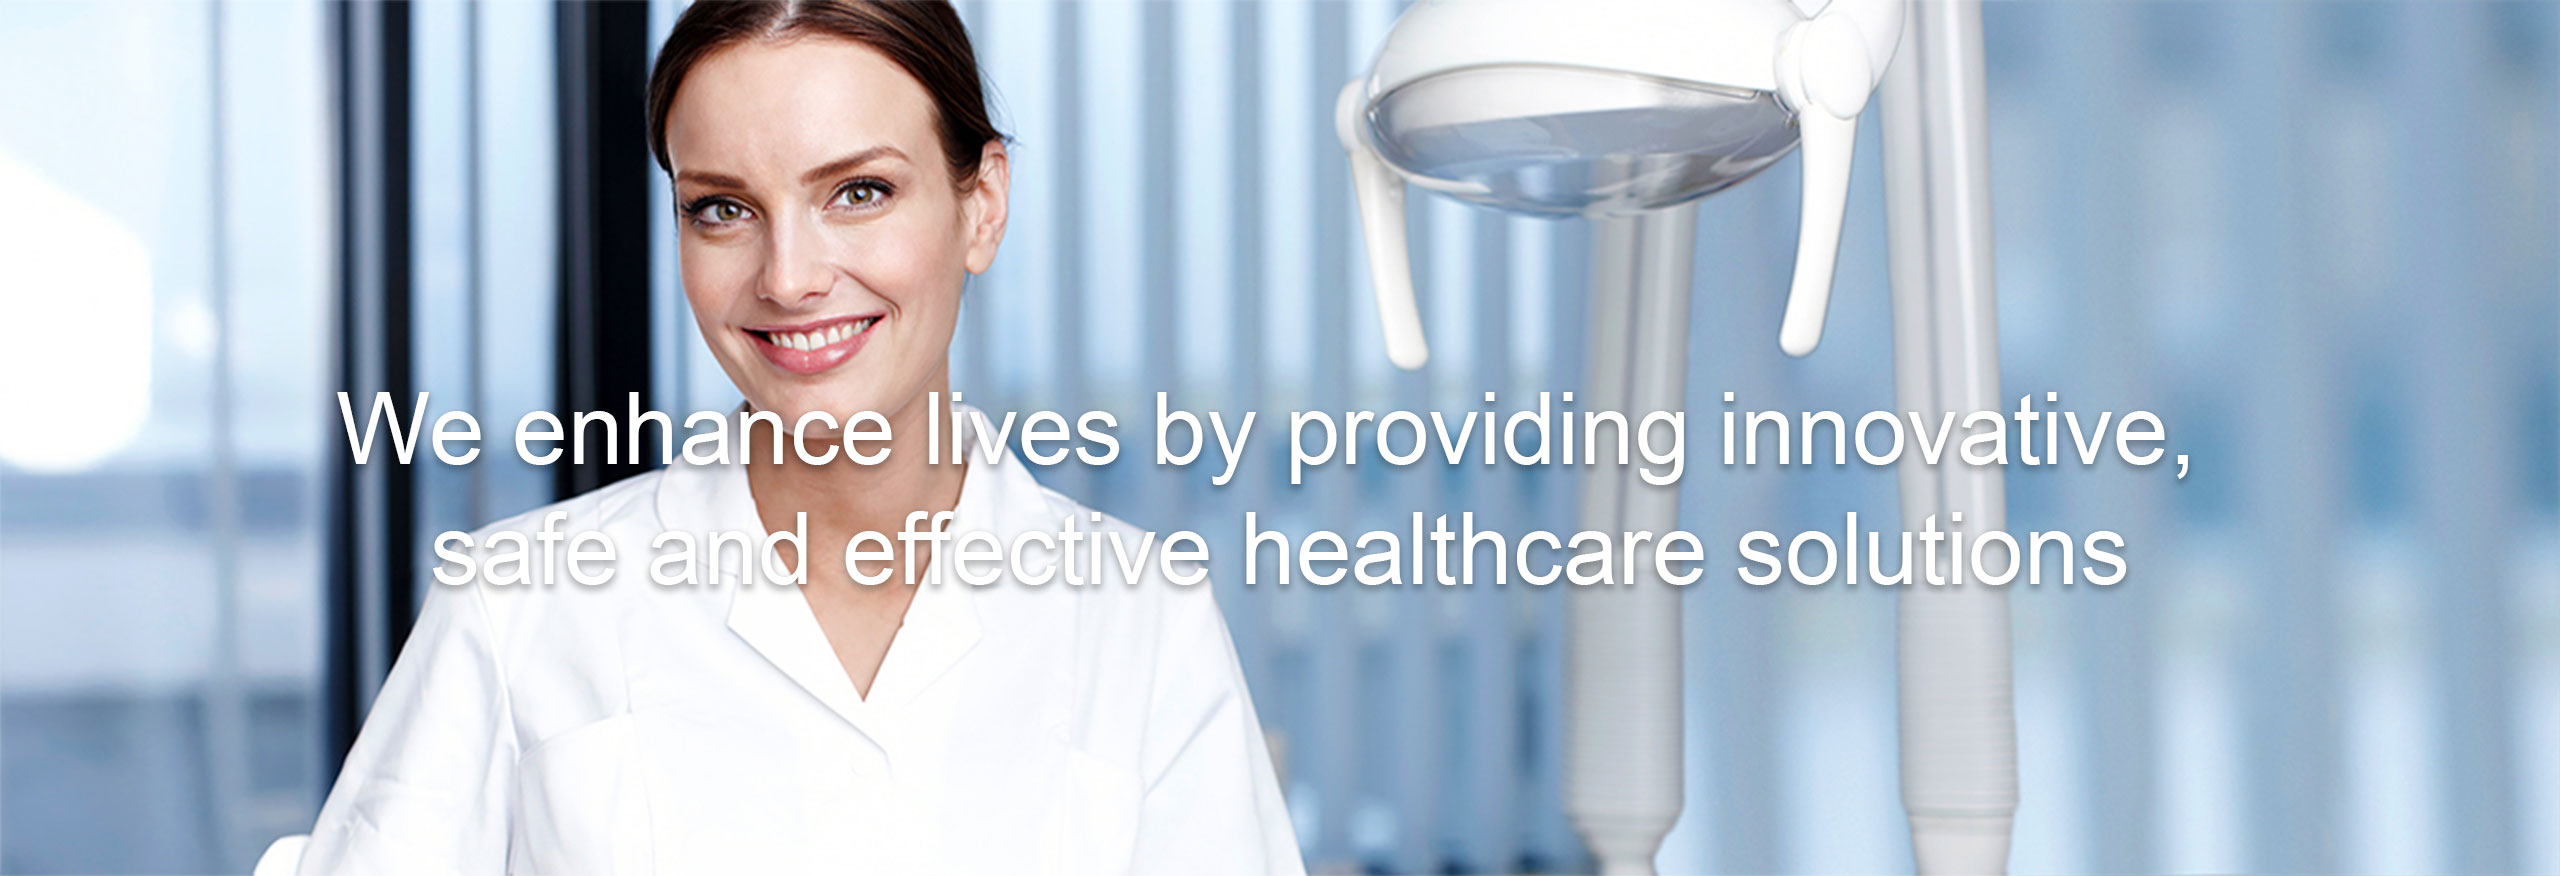 We enhance lives by providing innovative, safe and effective healthcare solutions